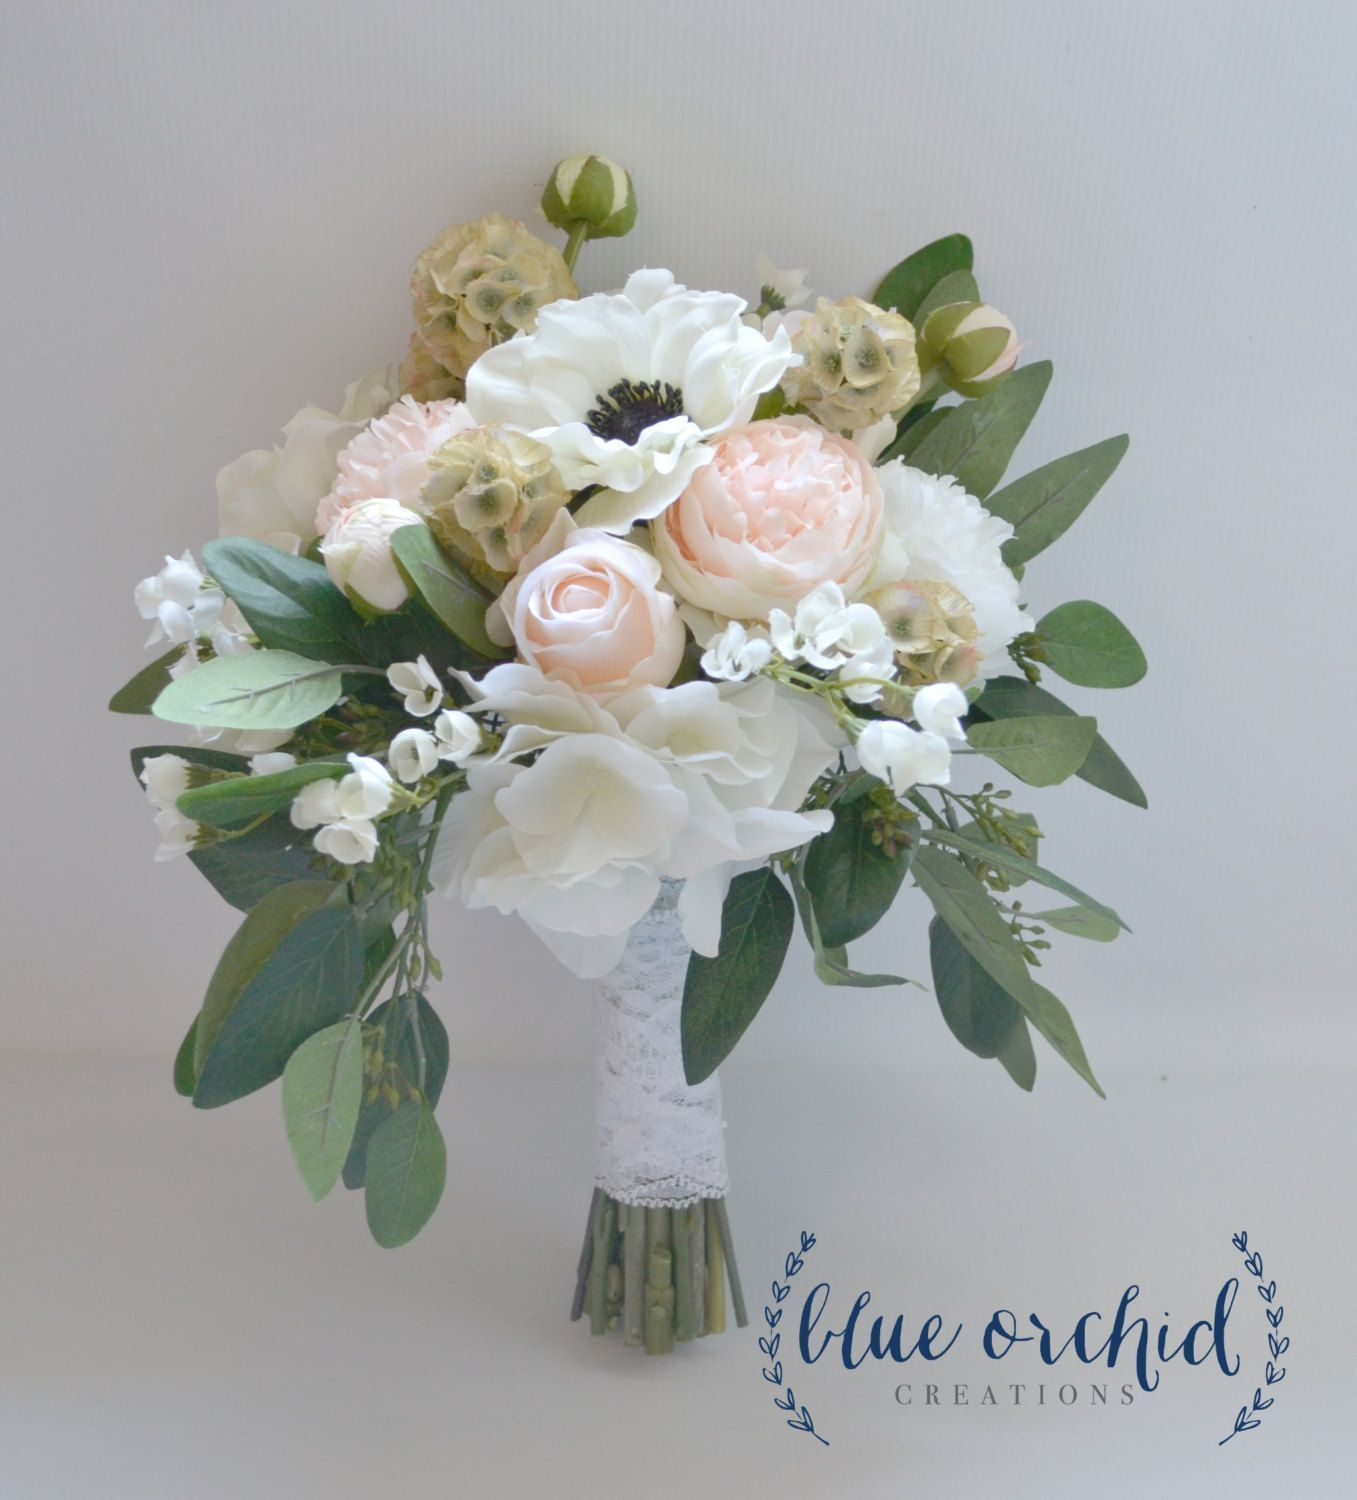 This wedding bouquet is one of our deluxe designs only the highest this wedding bouquet is one of our deluxe designs only the highest quality silk flowers have been included blush and cream colored peonies ranunculus izmirmasajfo Choice Image